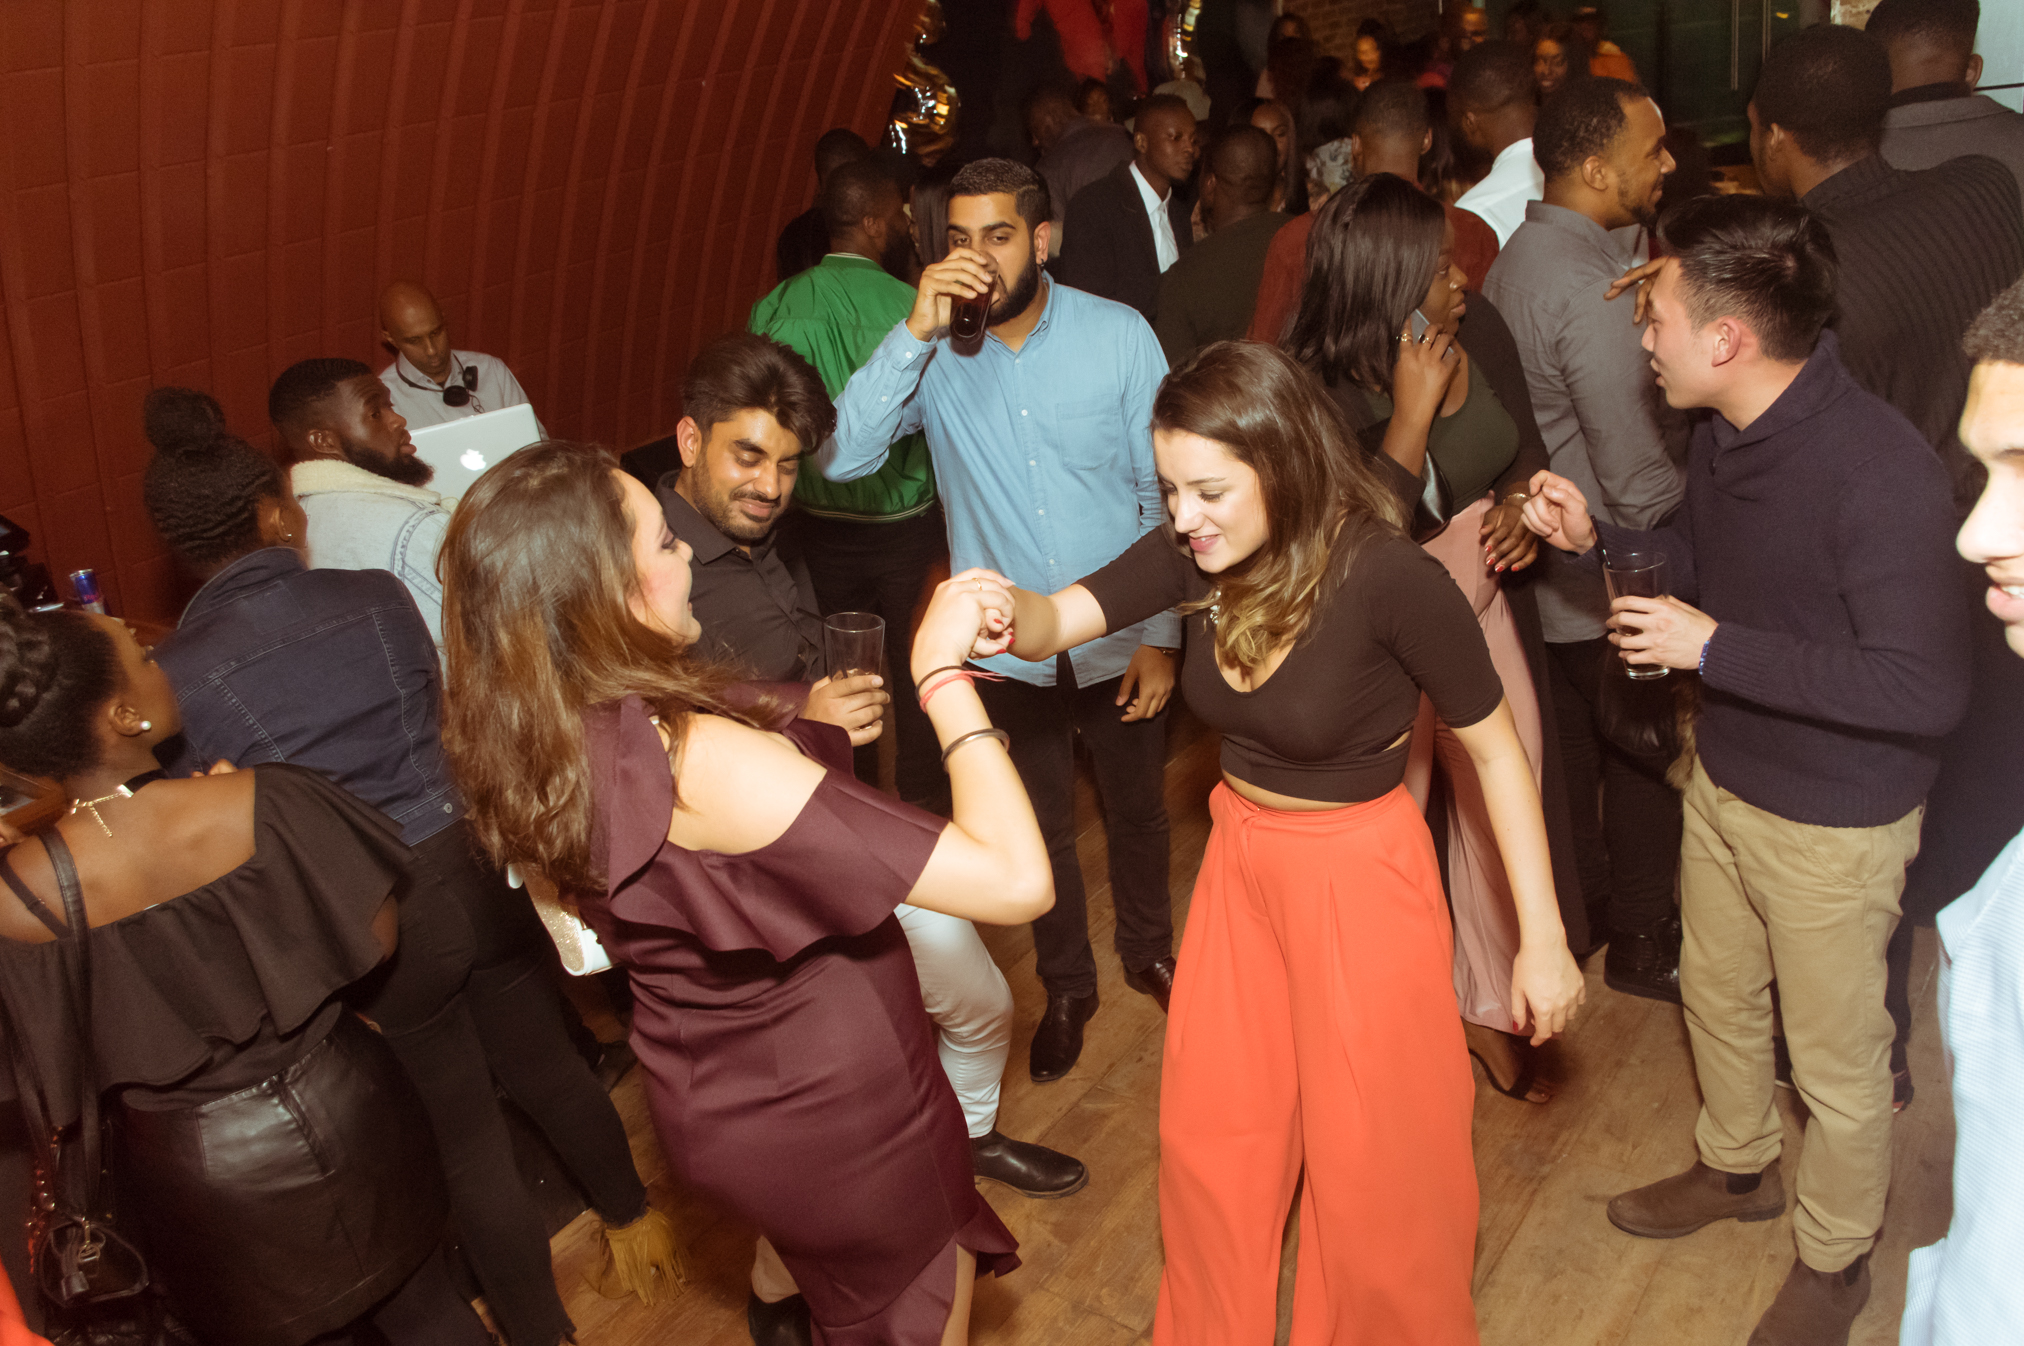 London Groove NYE at SAMA Bankside